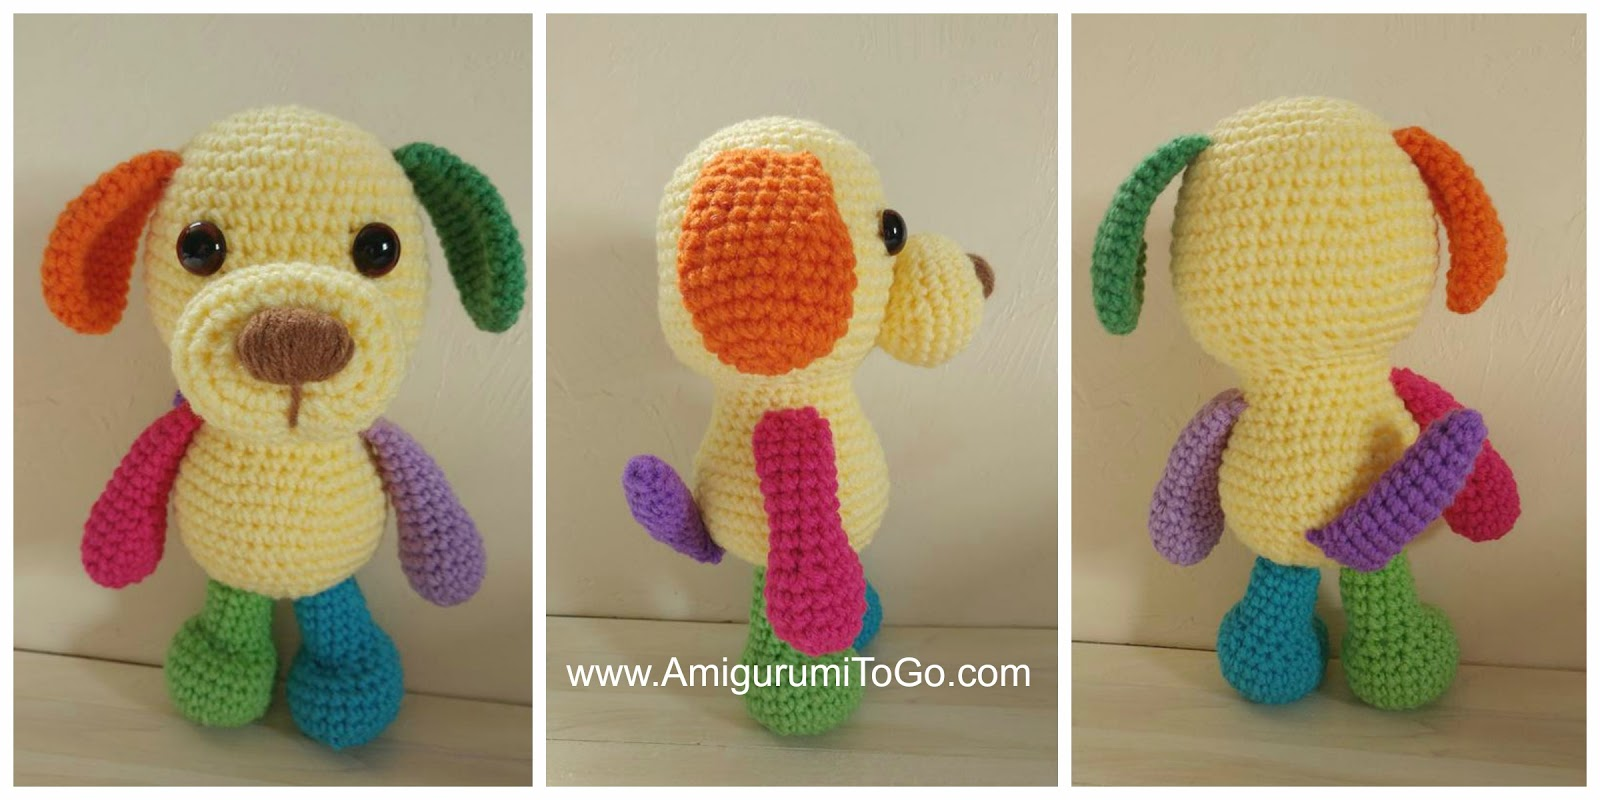 Amigurumi To Go Little Bigfoot : Assembly Page For the Little Bigfoot Puppy ~ Amigurumi To Go